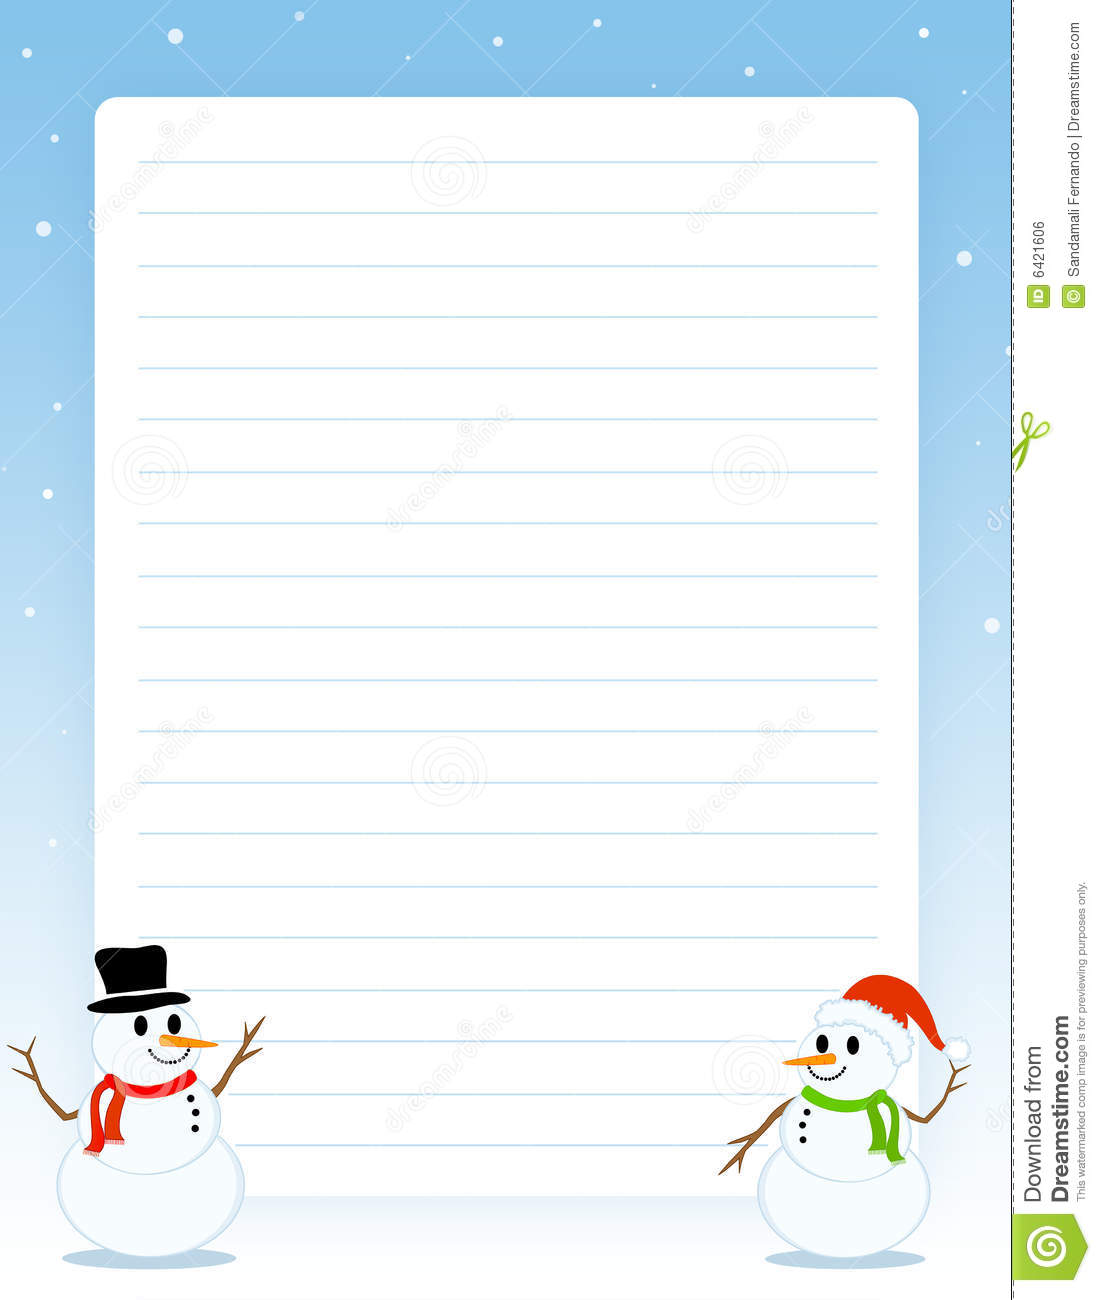 blue painted background christmas stationary ruled note book page